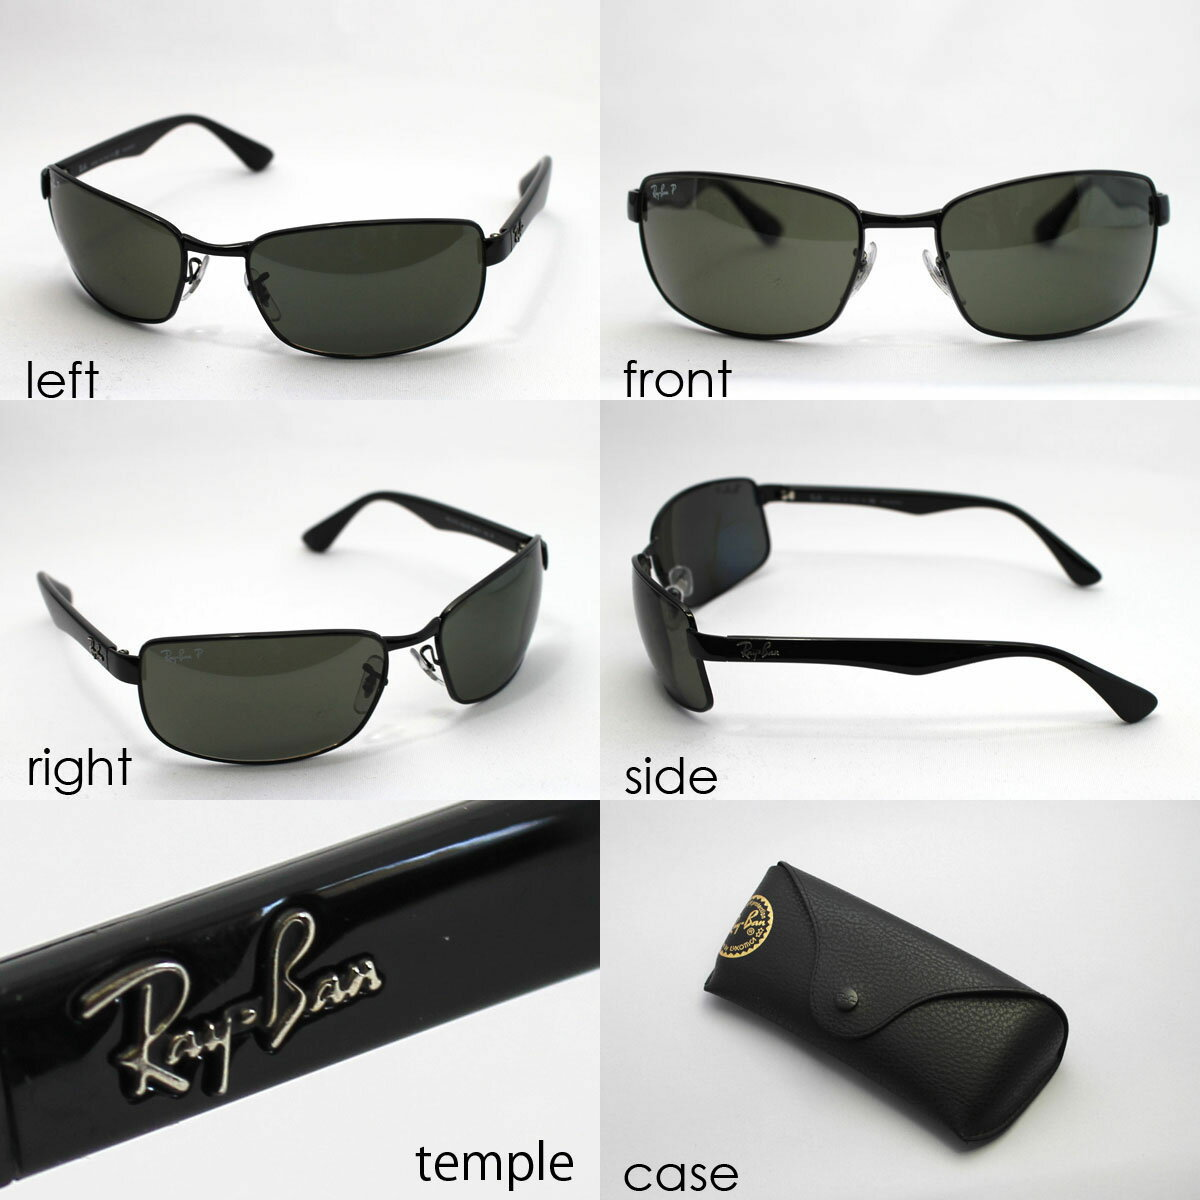 Discover the collections of sunglasses and eyeglasses for women, men and kids. Ray-Ban® is the global leader in premium eyewear market. Discover the collections of sunglasses and eyeglasses for women, men and kids. Free Shipping and Free Returns > Ray-Ban ® Sunglasses Shop. Men Women Kids All Sunglasses Accessories Gift Card Promo; New Arrivals Best Sellers Flash Lenses Evolve .